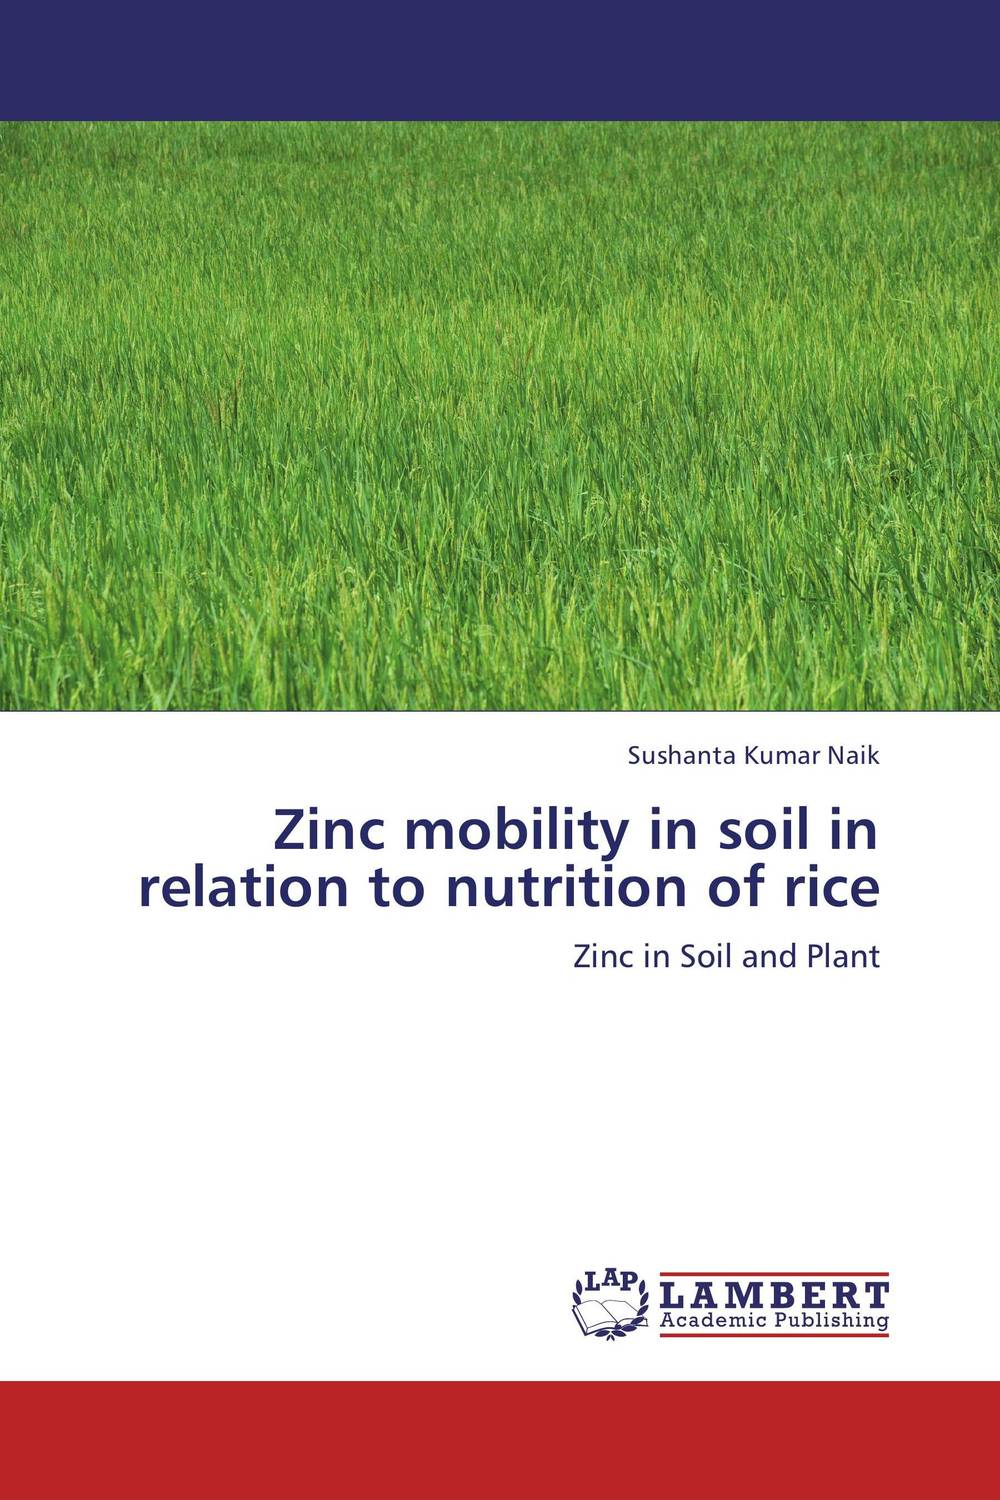 цена на Zinc mobility in soil in relation to nutrition of rice